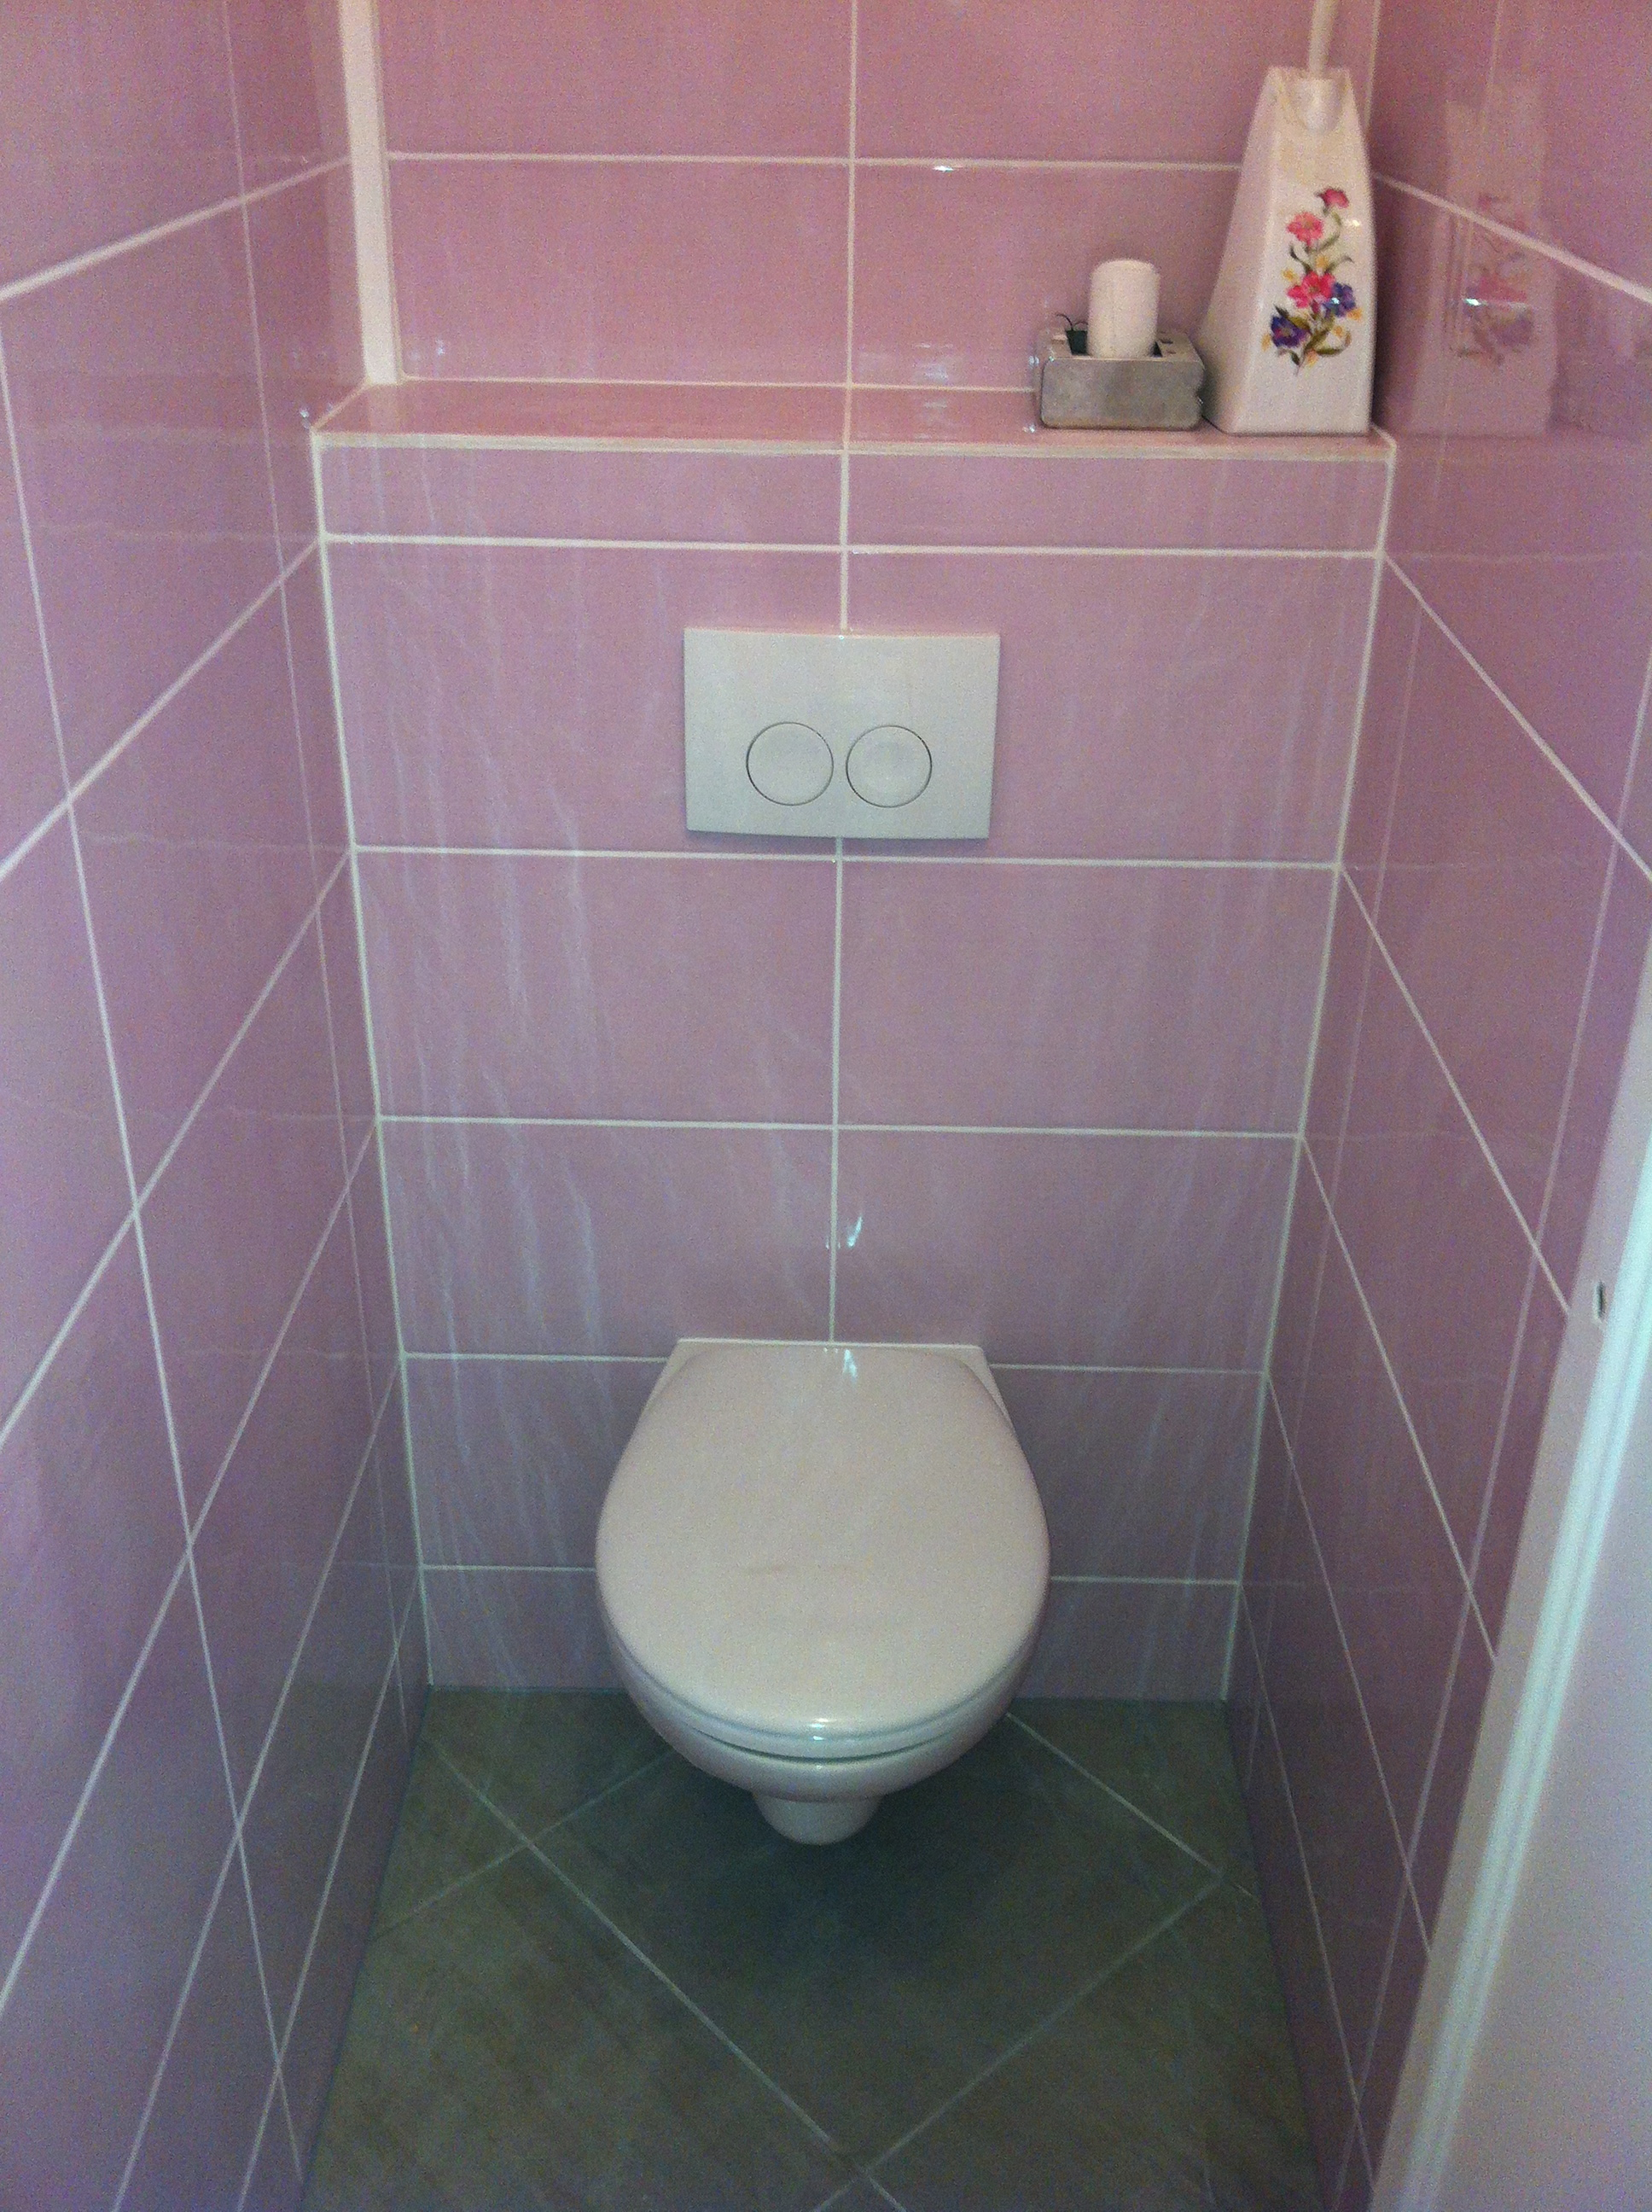 Wc suspendu dream house for Arrivee d eau wc suspendu